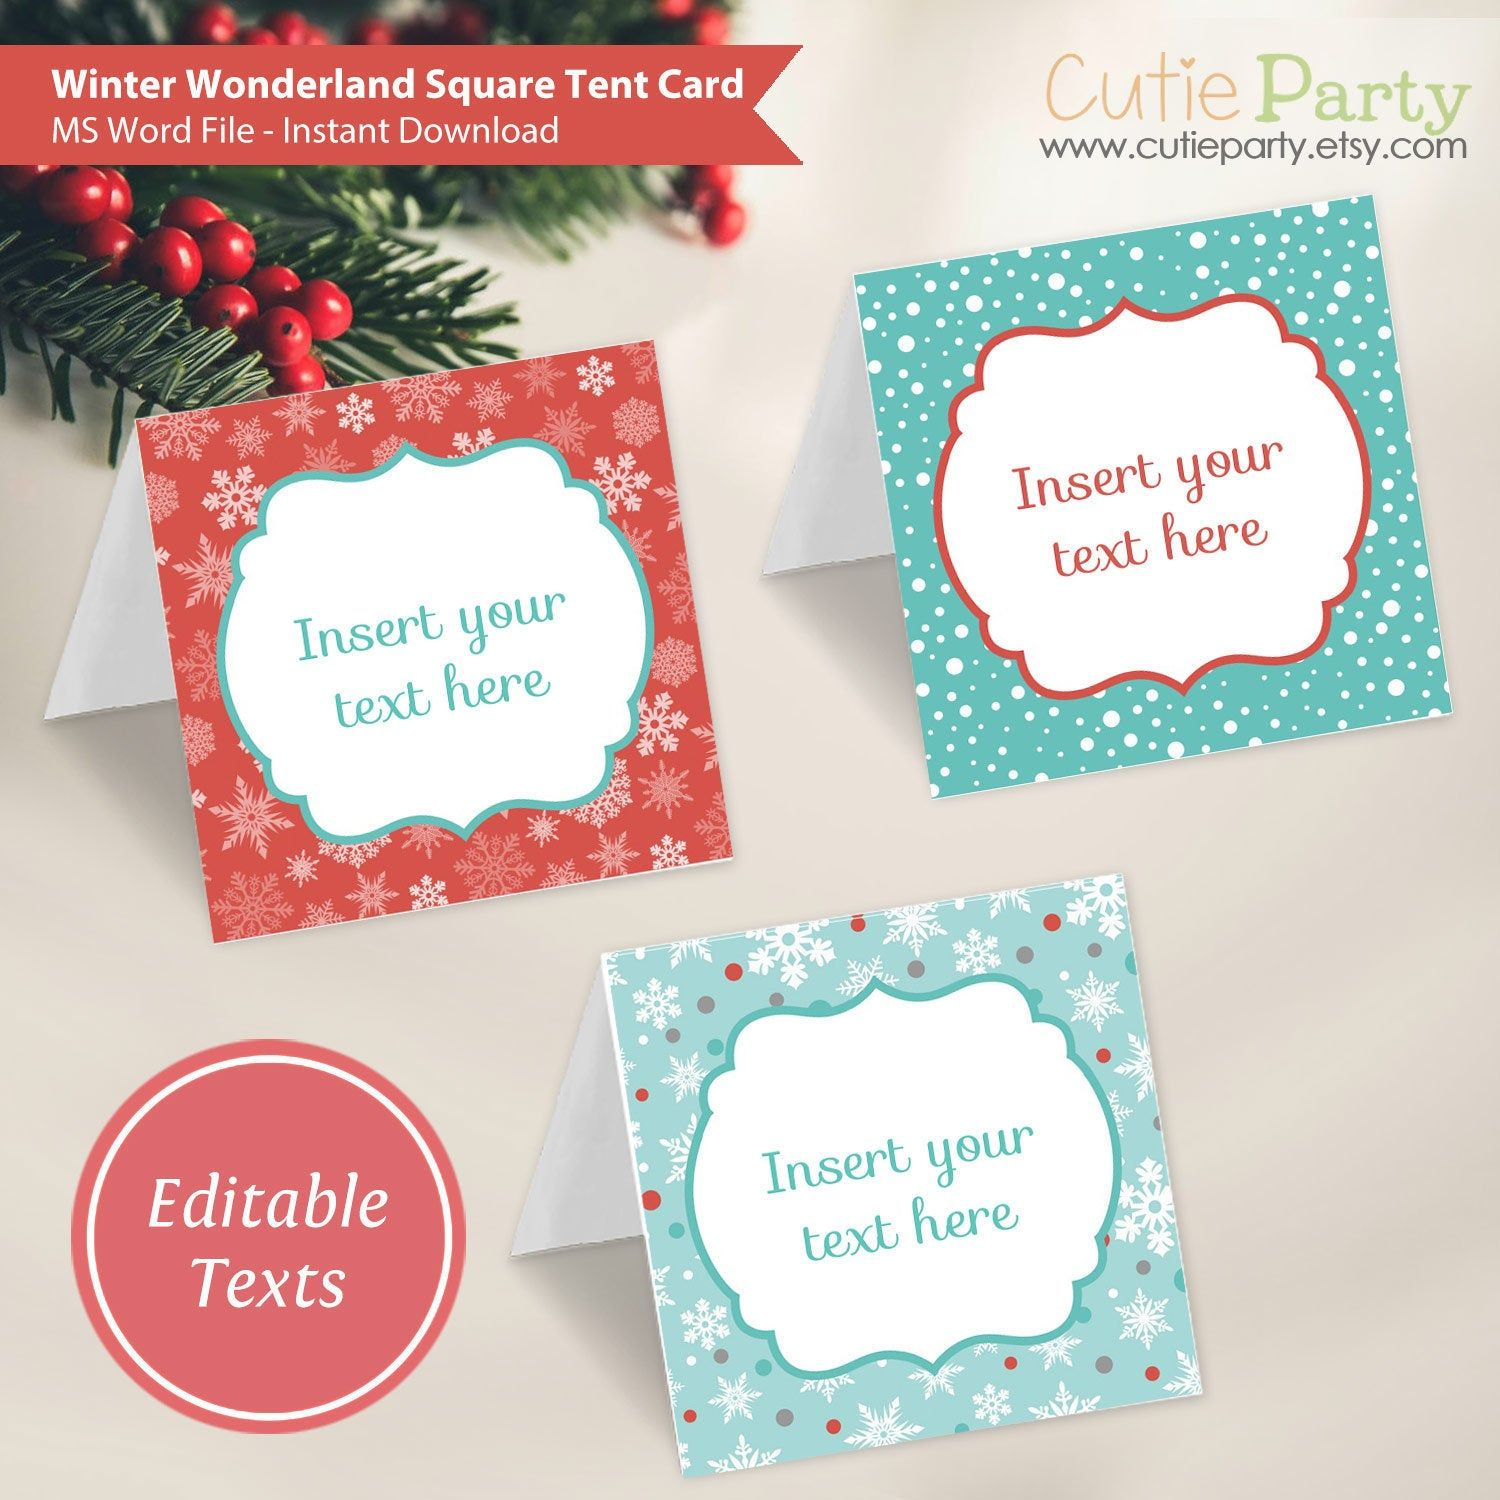 Winter Wonderland Tent Card Christmas Party Printable Winter Holiday Editable Tent Card Food L Gift Labels Winter Wonderland Invitations Food Label Template